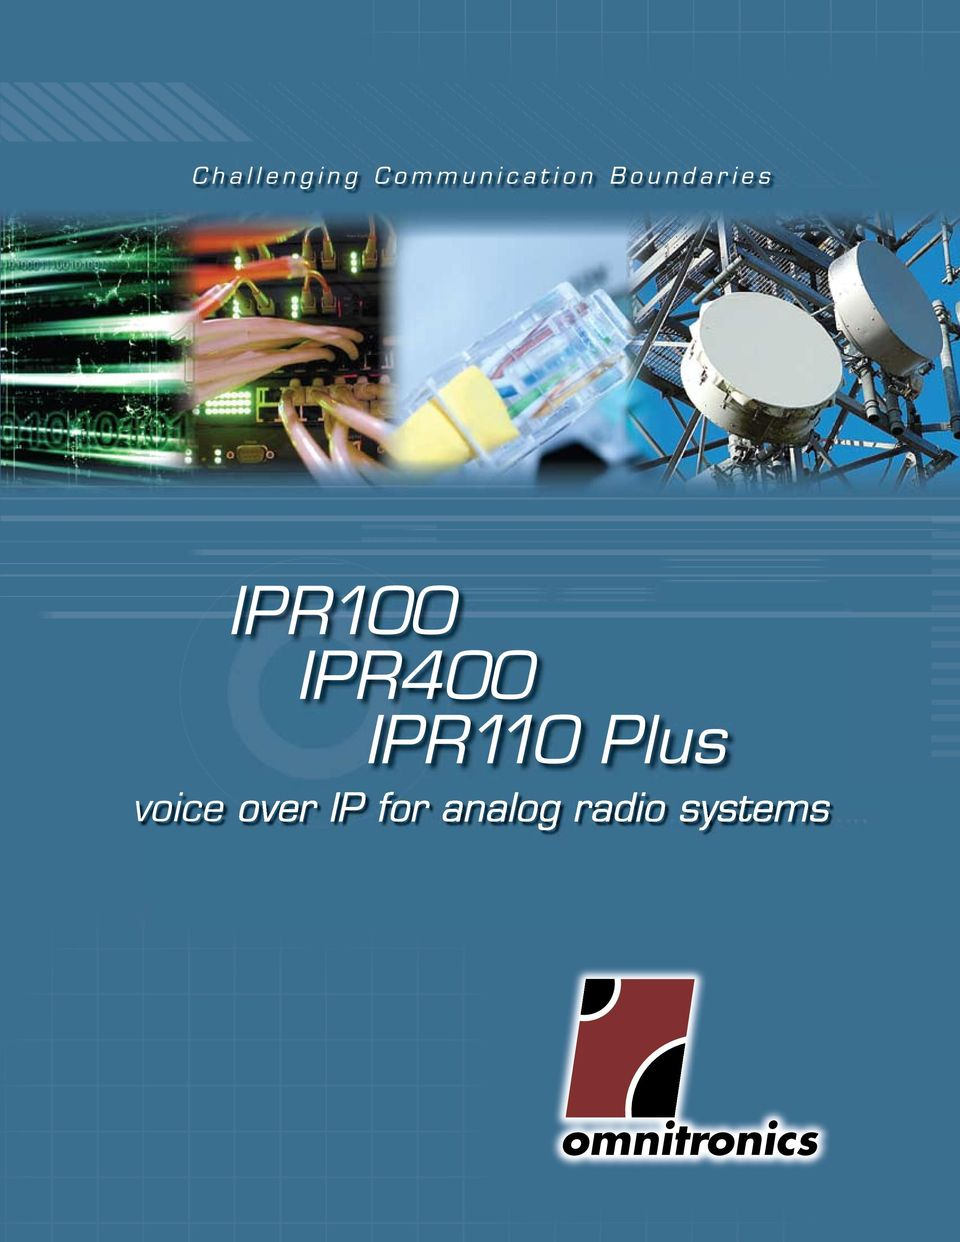 IPR110 Plus voice over IP